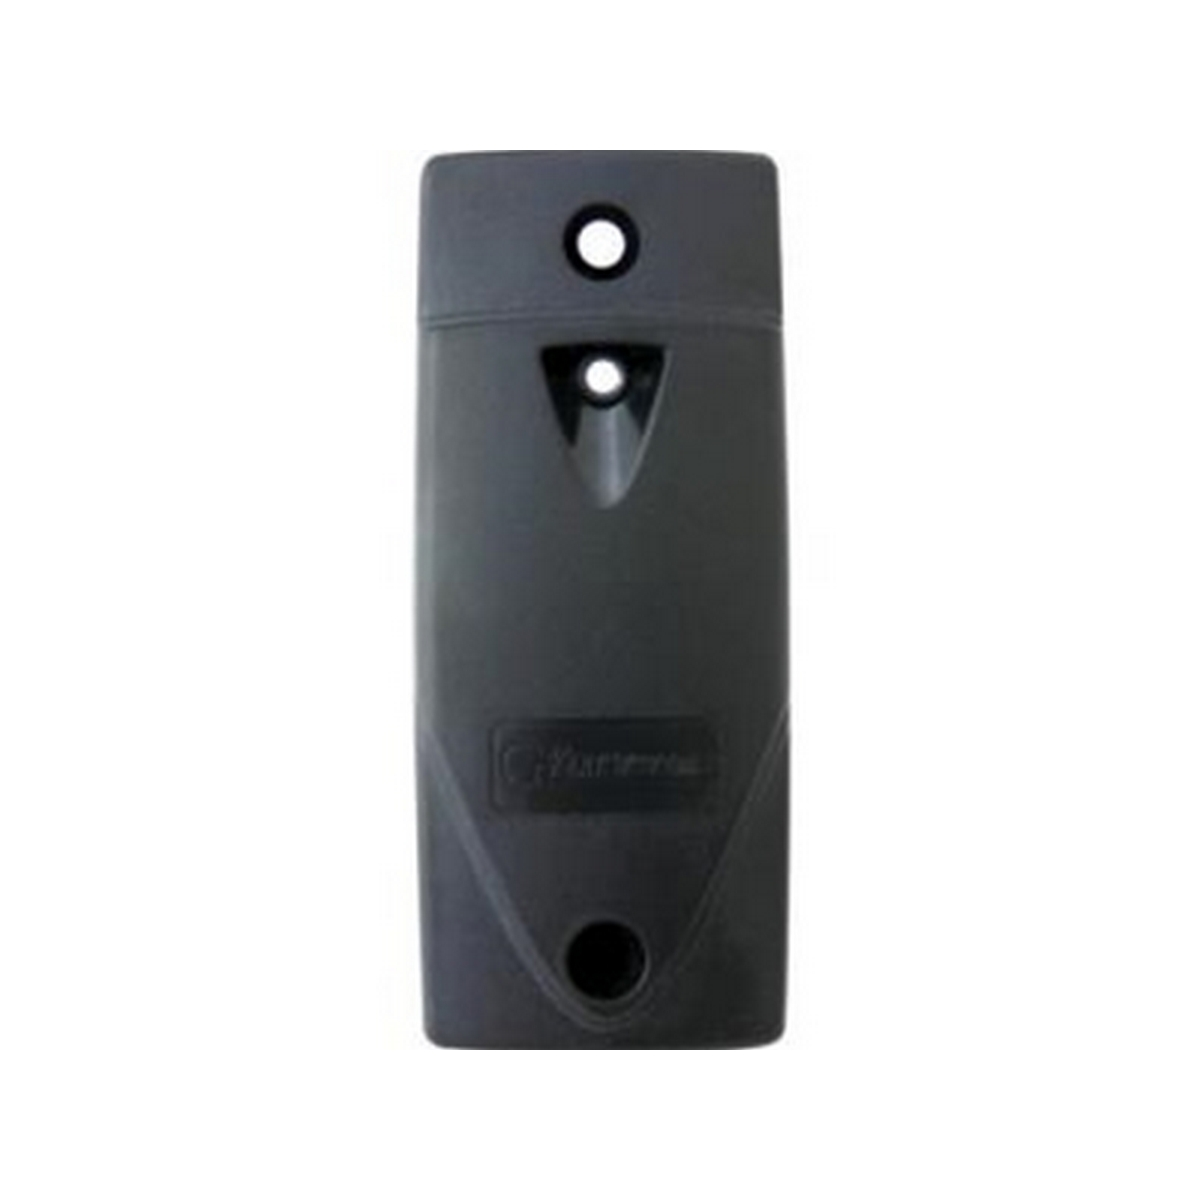 Door Frame Proximity Reader - Entry/Access Version